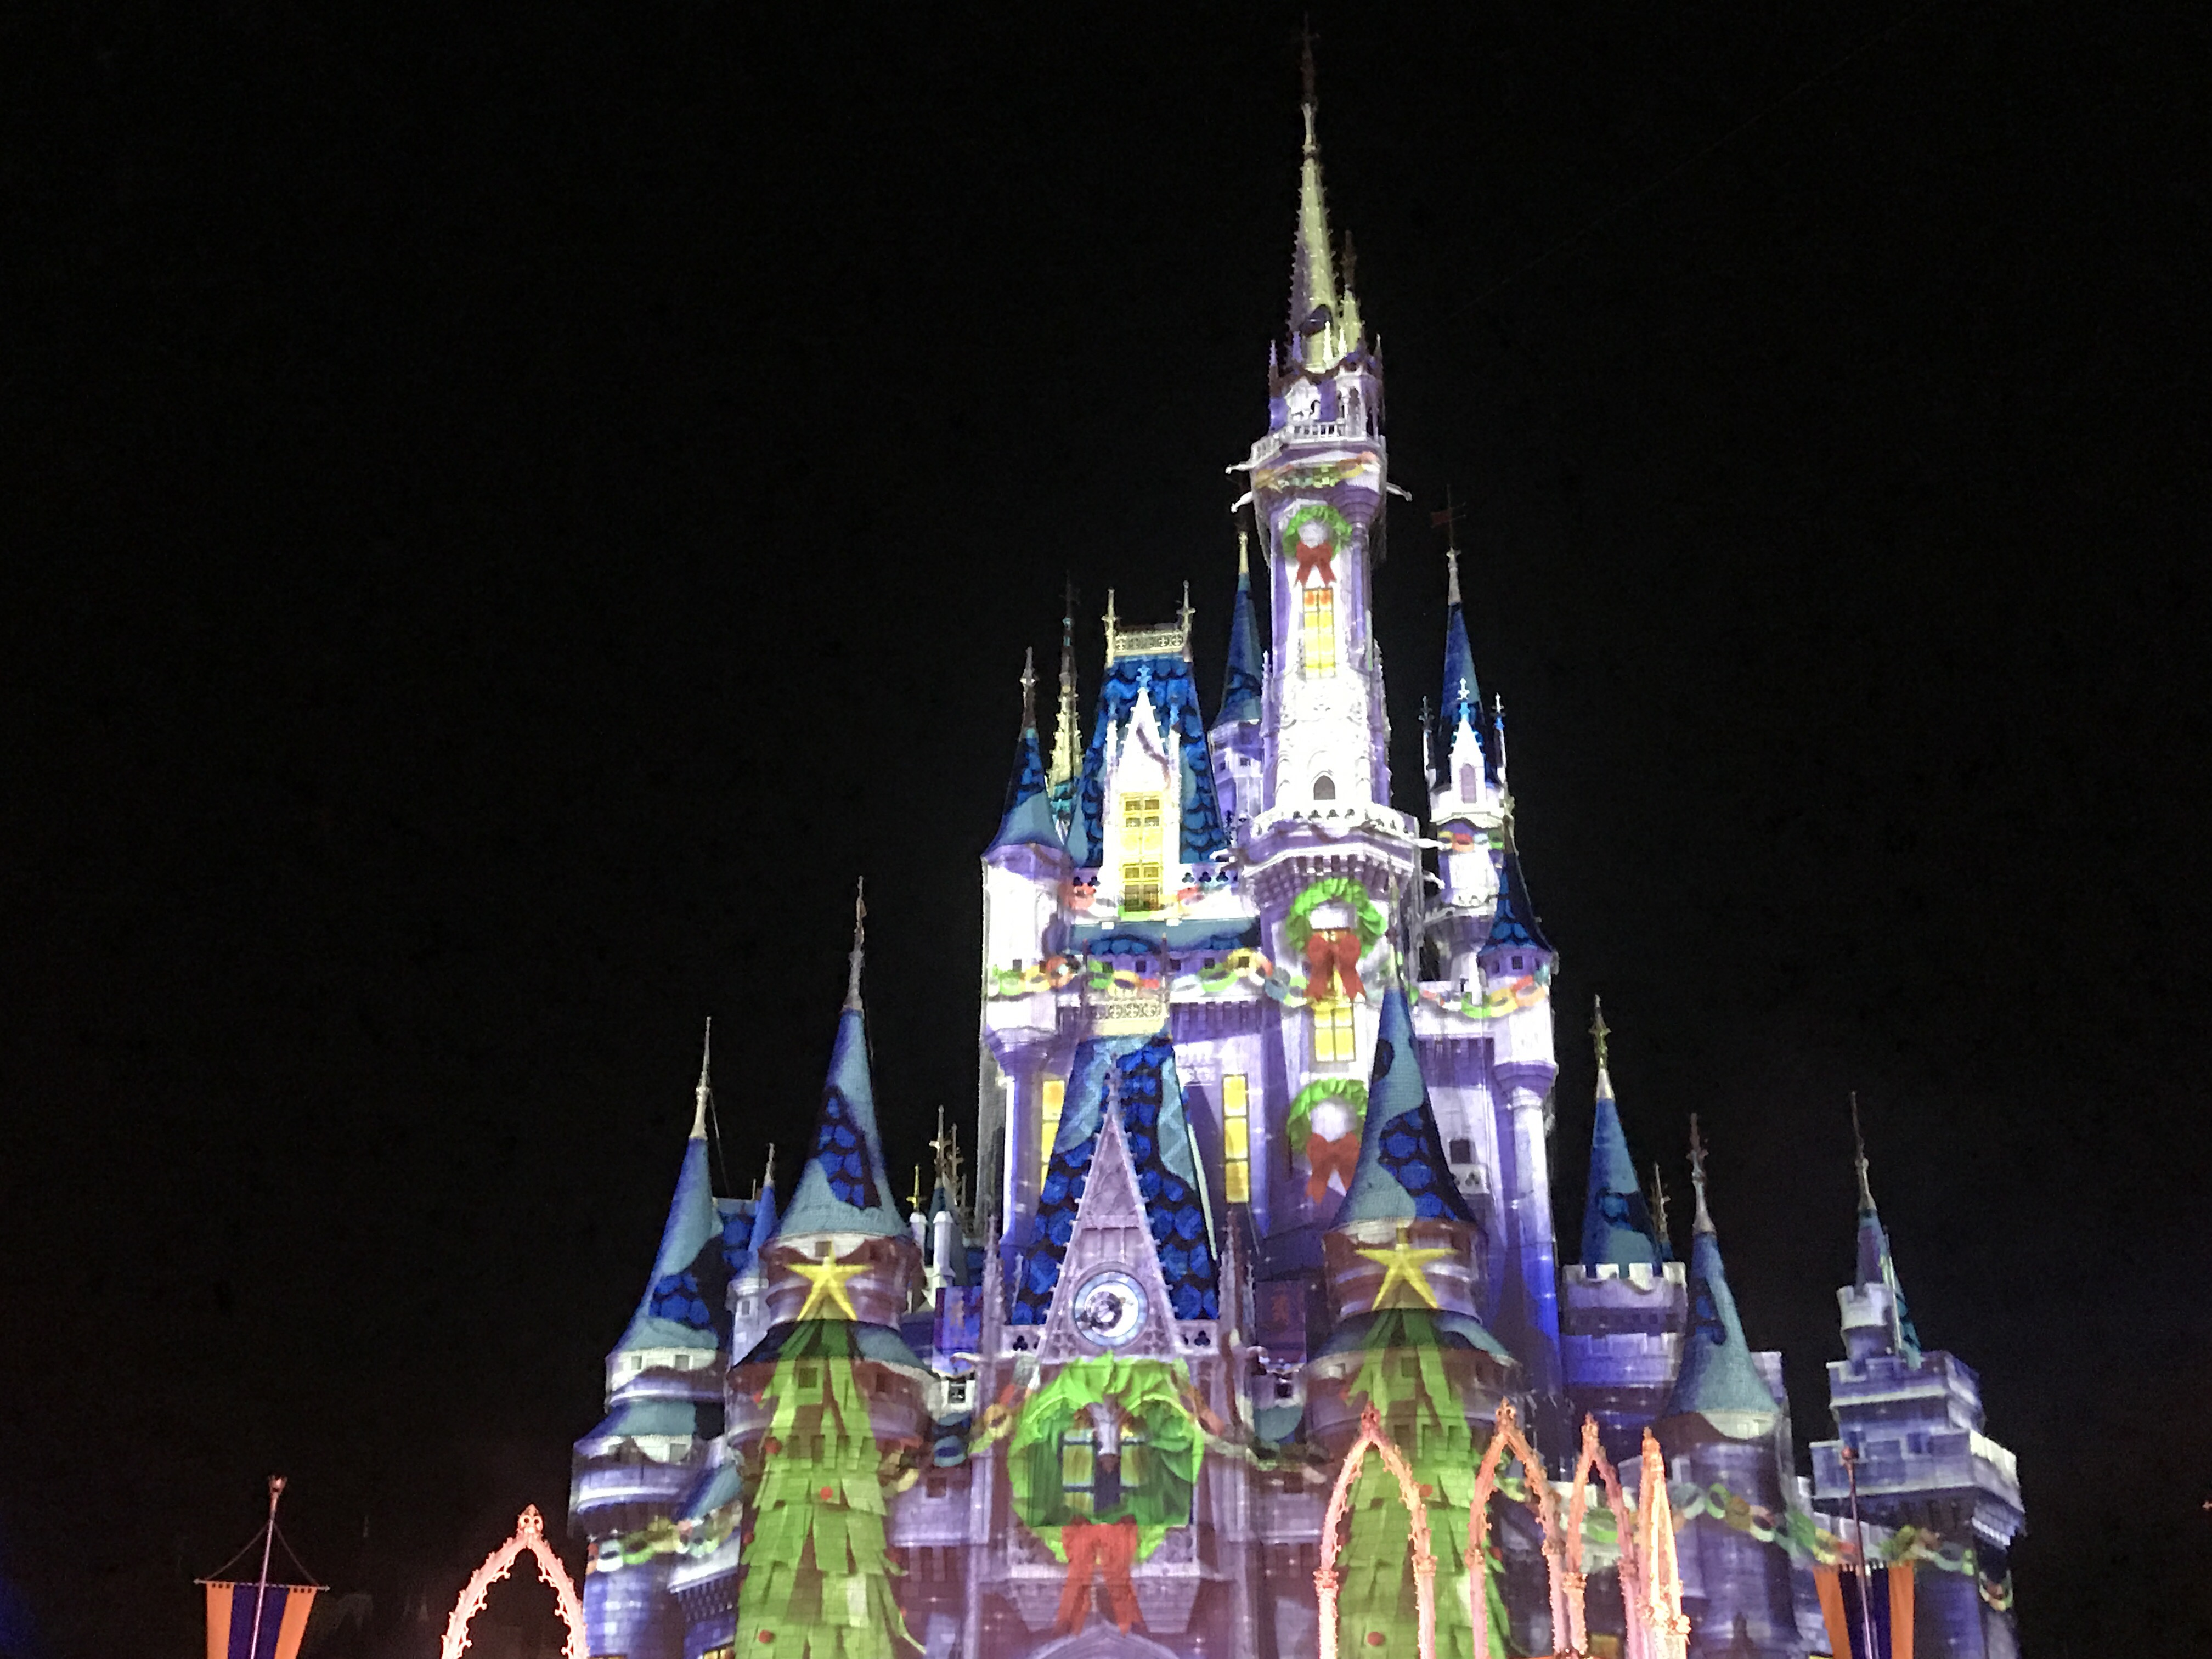 Mickey's Very Merry Christmas Party, mickey's very merry christmas, mickey's very merry christmas party 2017 tickets, mickey's very merry christmas party worth it, mickey's very merry christmas party 2017 dates mickey's very merry christmas party disney world, mickey's very merry christmas party 2017 schedule, mickey's christmas party 2017, mickey's very merry christmas party 2017 map, mickey's very merry christmas 2017, mickey's very merry christmas, mickey's very merry christmas party 2017 tickets, mickey's very merry christmas party worth it, mickey's very merry christmas party 2017 dates mickey's very merry christmas party orlando, mickey's very merry christmas party schedule, mickey's christmas party, mickey's very merry christmas party map, mickey's very merry christmas